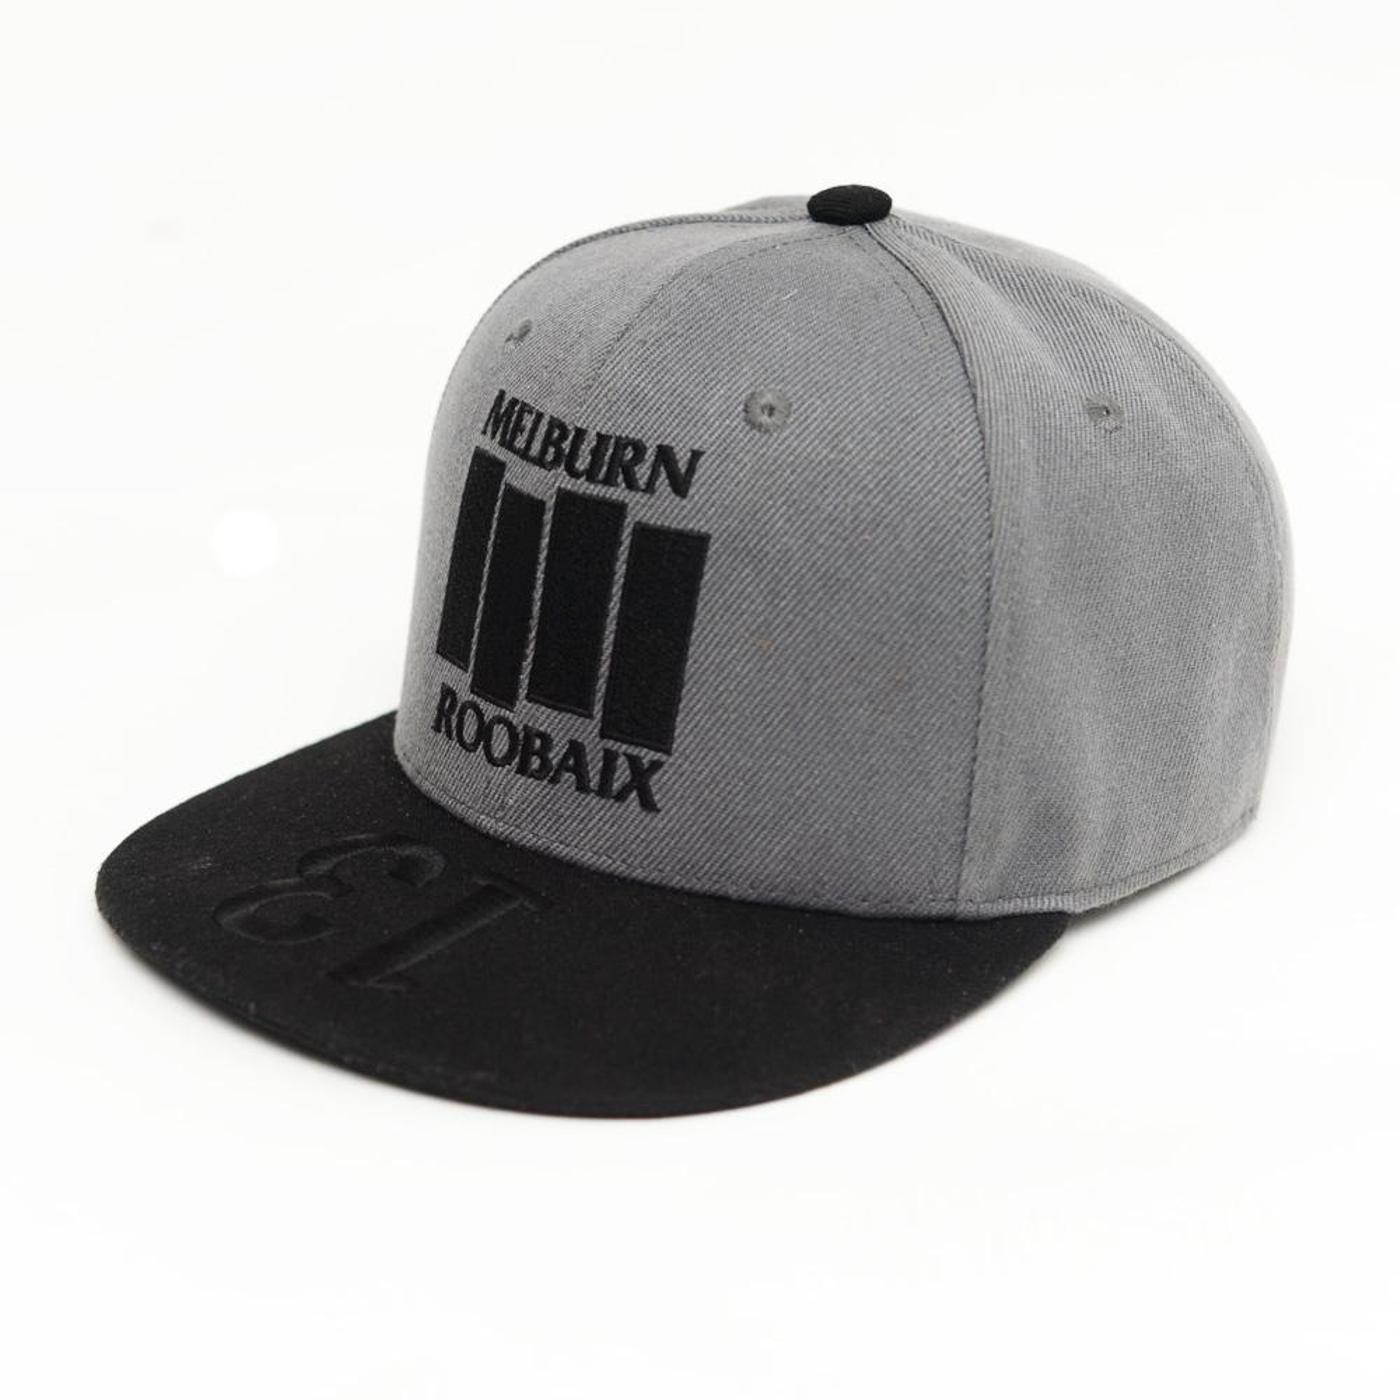 Melburn Roobaix's Lucky 13 Snapback Hat